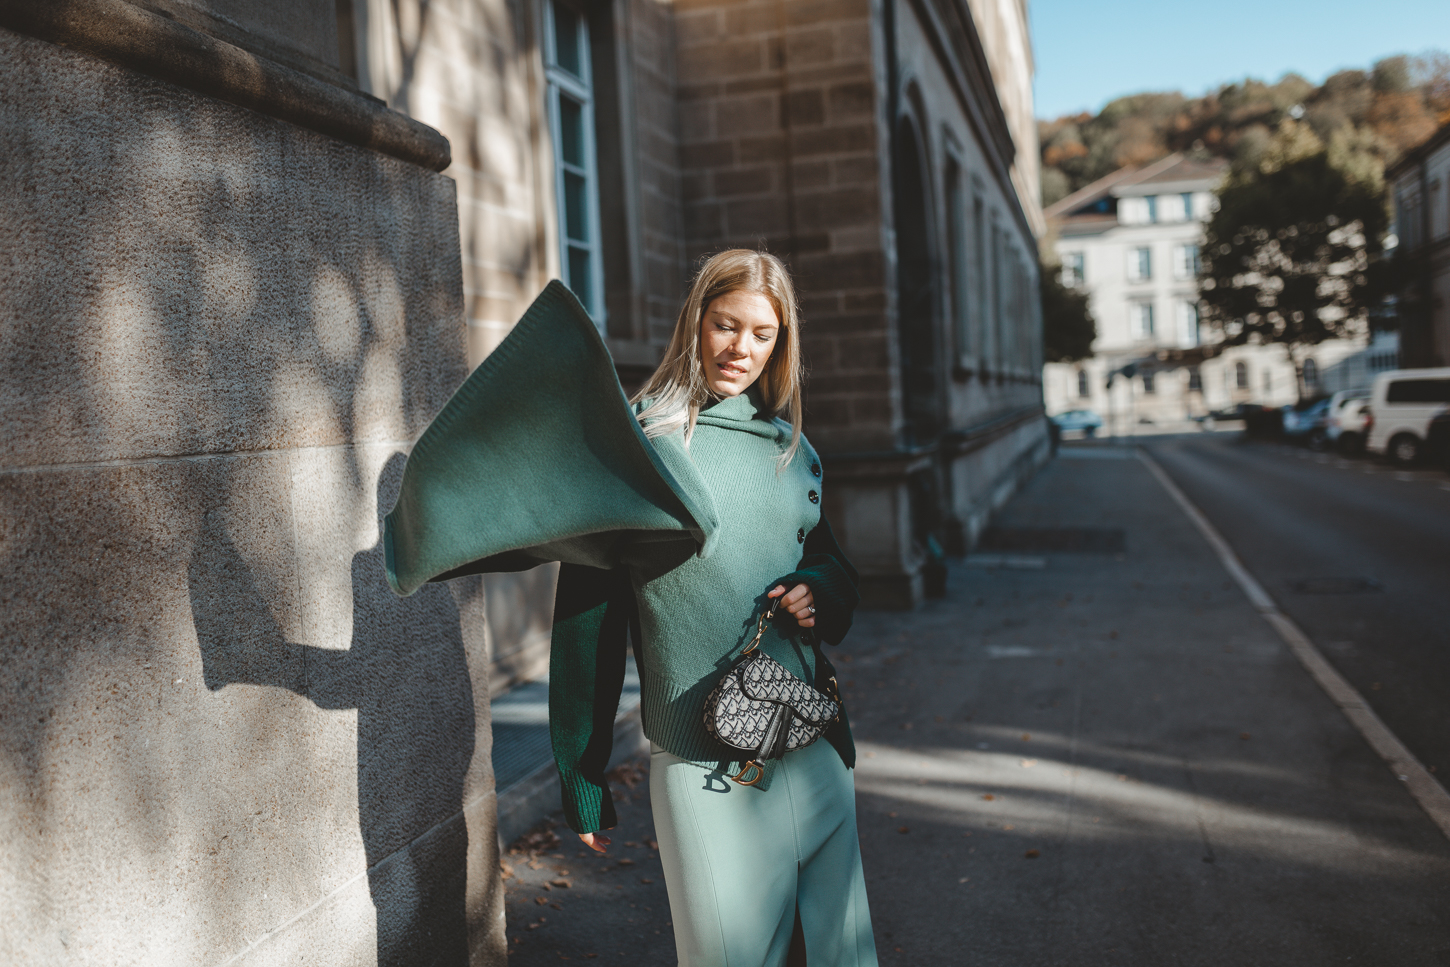 Quetzal Green- Trendfarbe Herbst '18 & ein Label to watch!